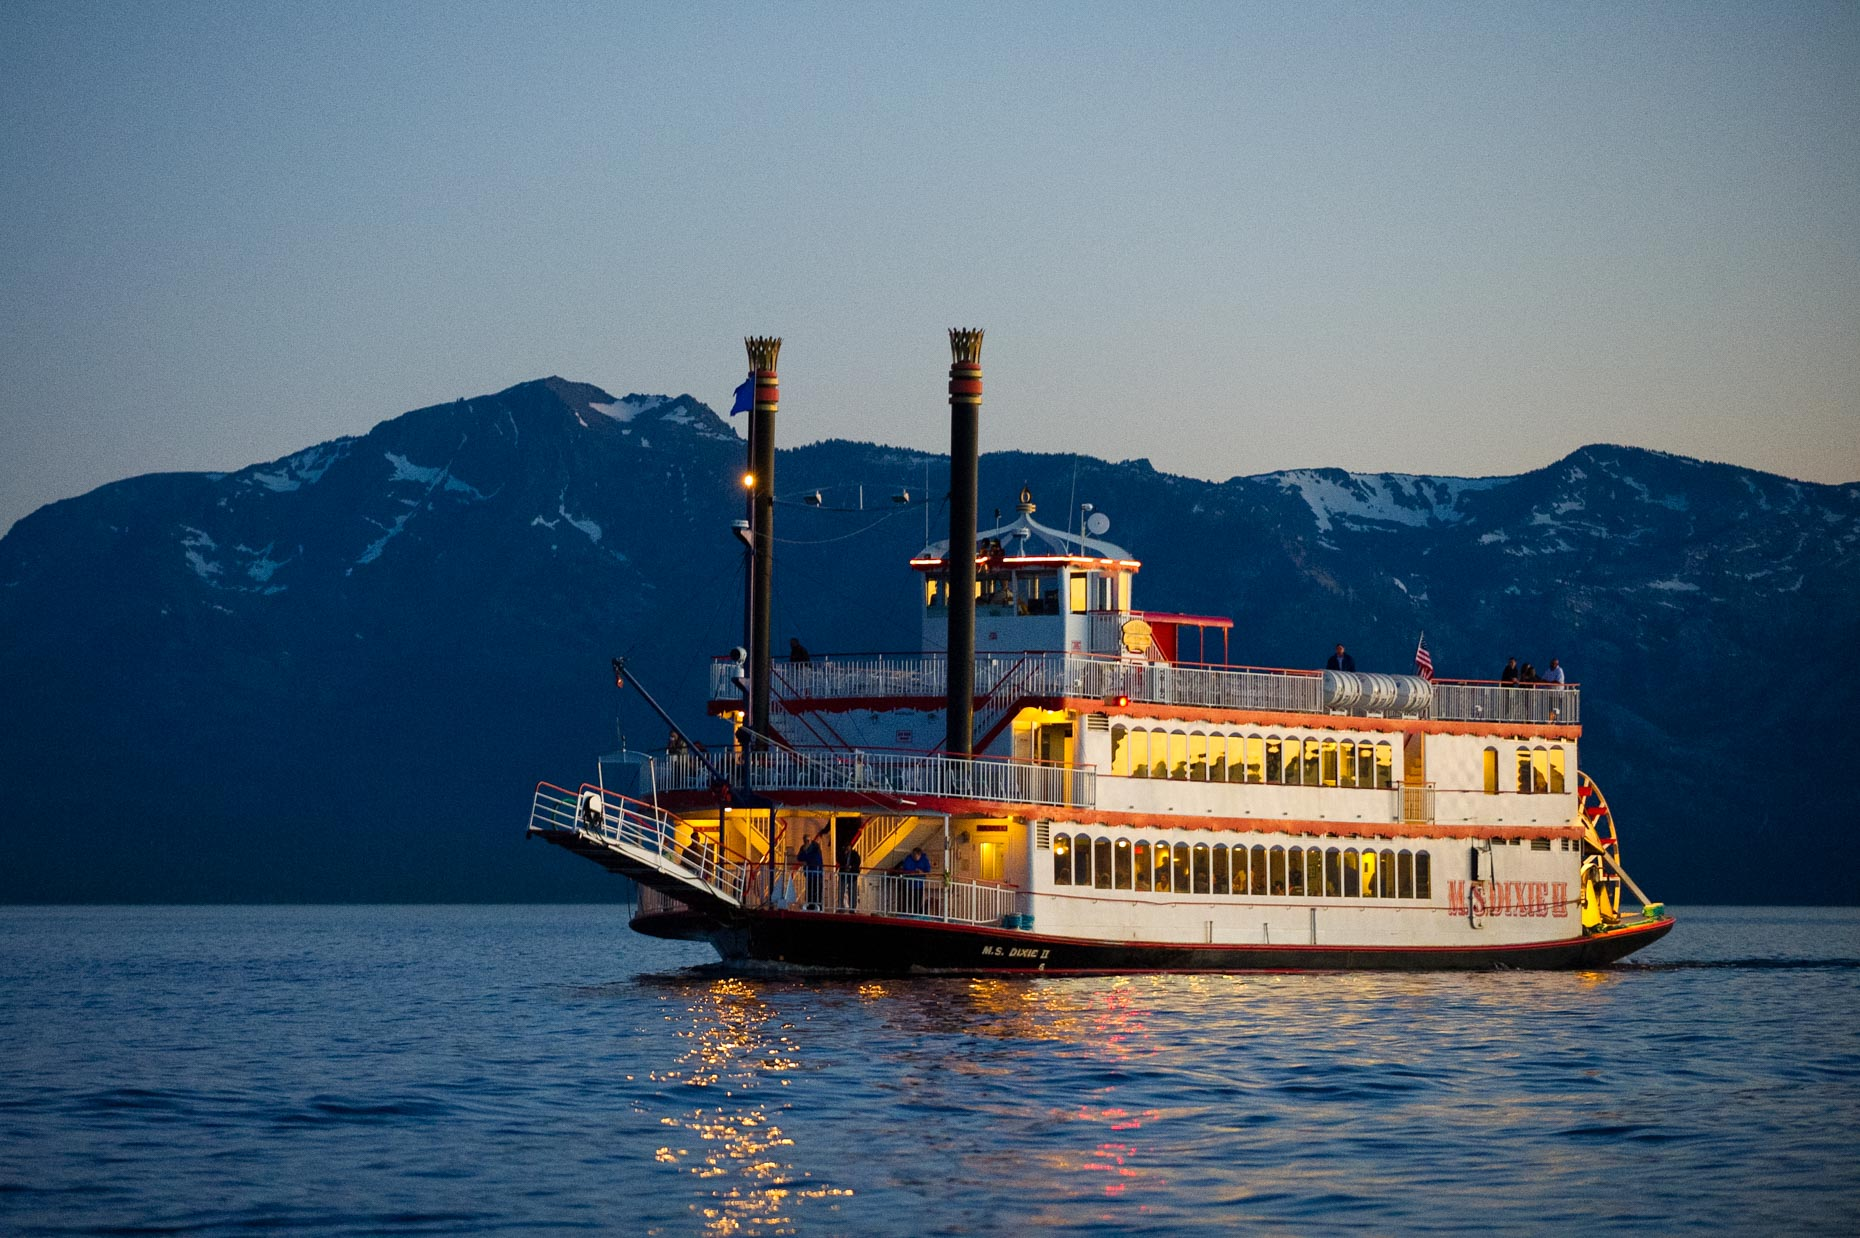 MS Dixie 2 At Dusk - Lake Tahoe